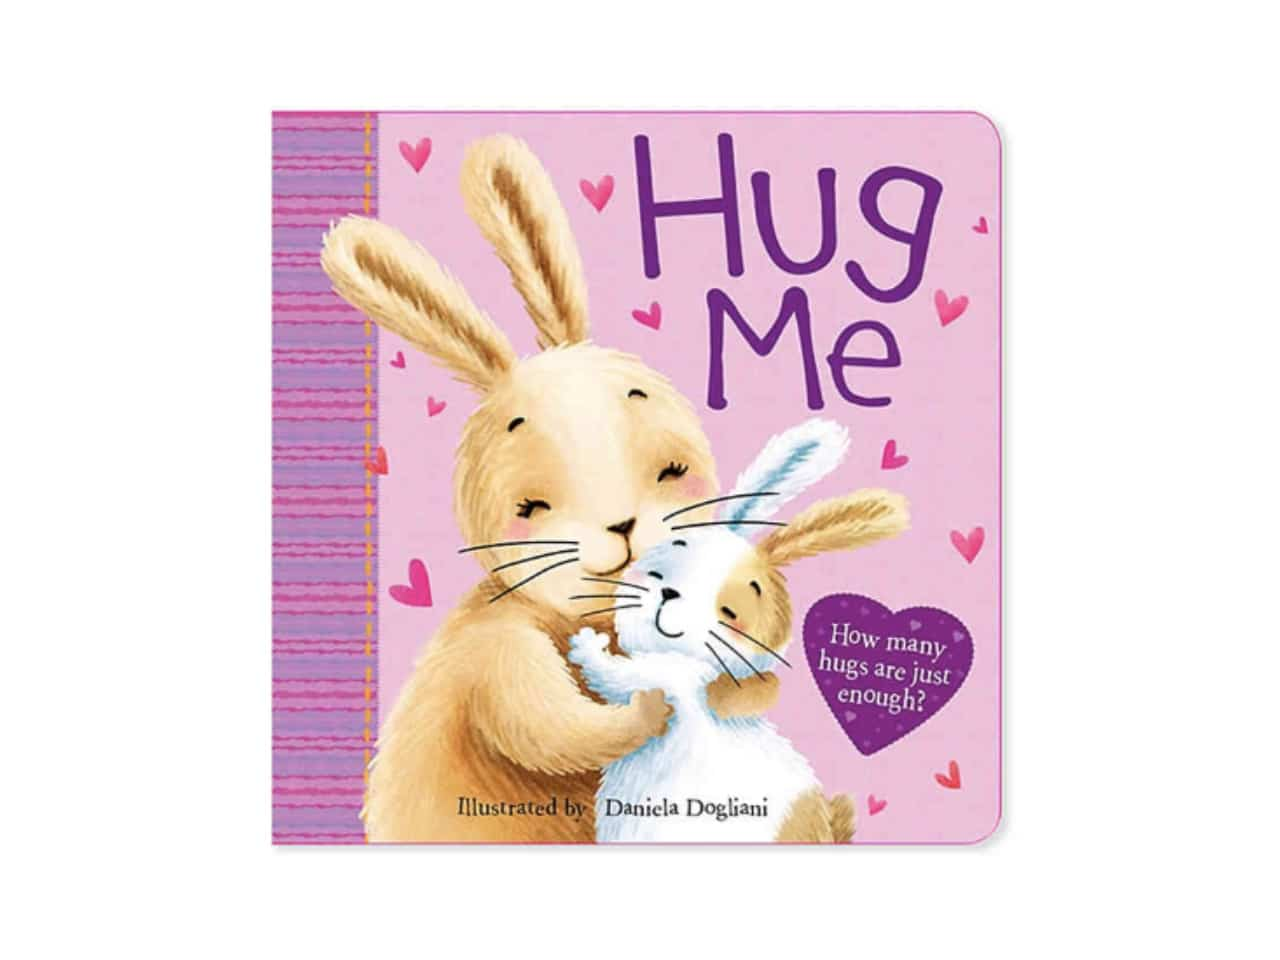 Pink book with bunnies hugging called 'Hug Me'